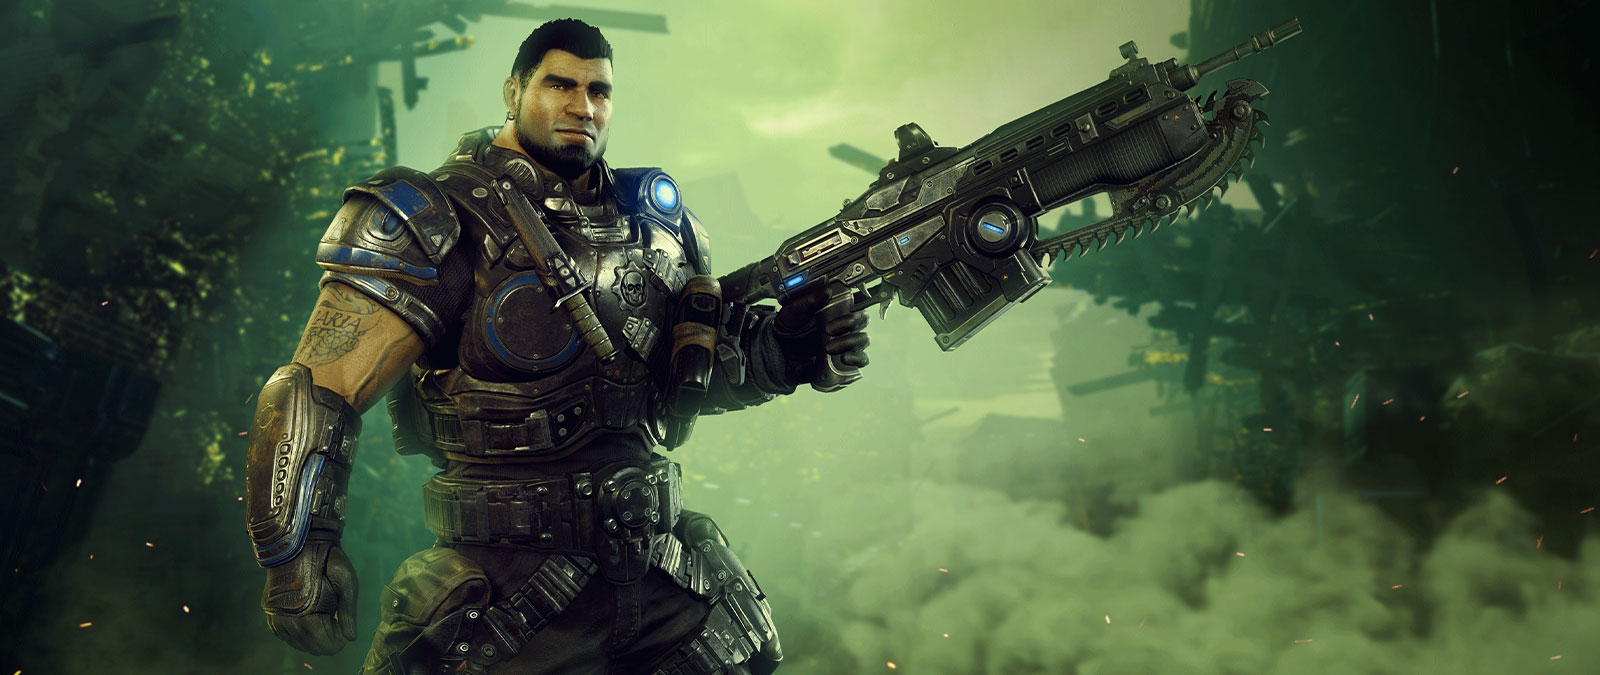 Gears 5 character carrying a large weapon in full armor